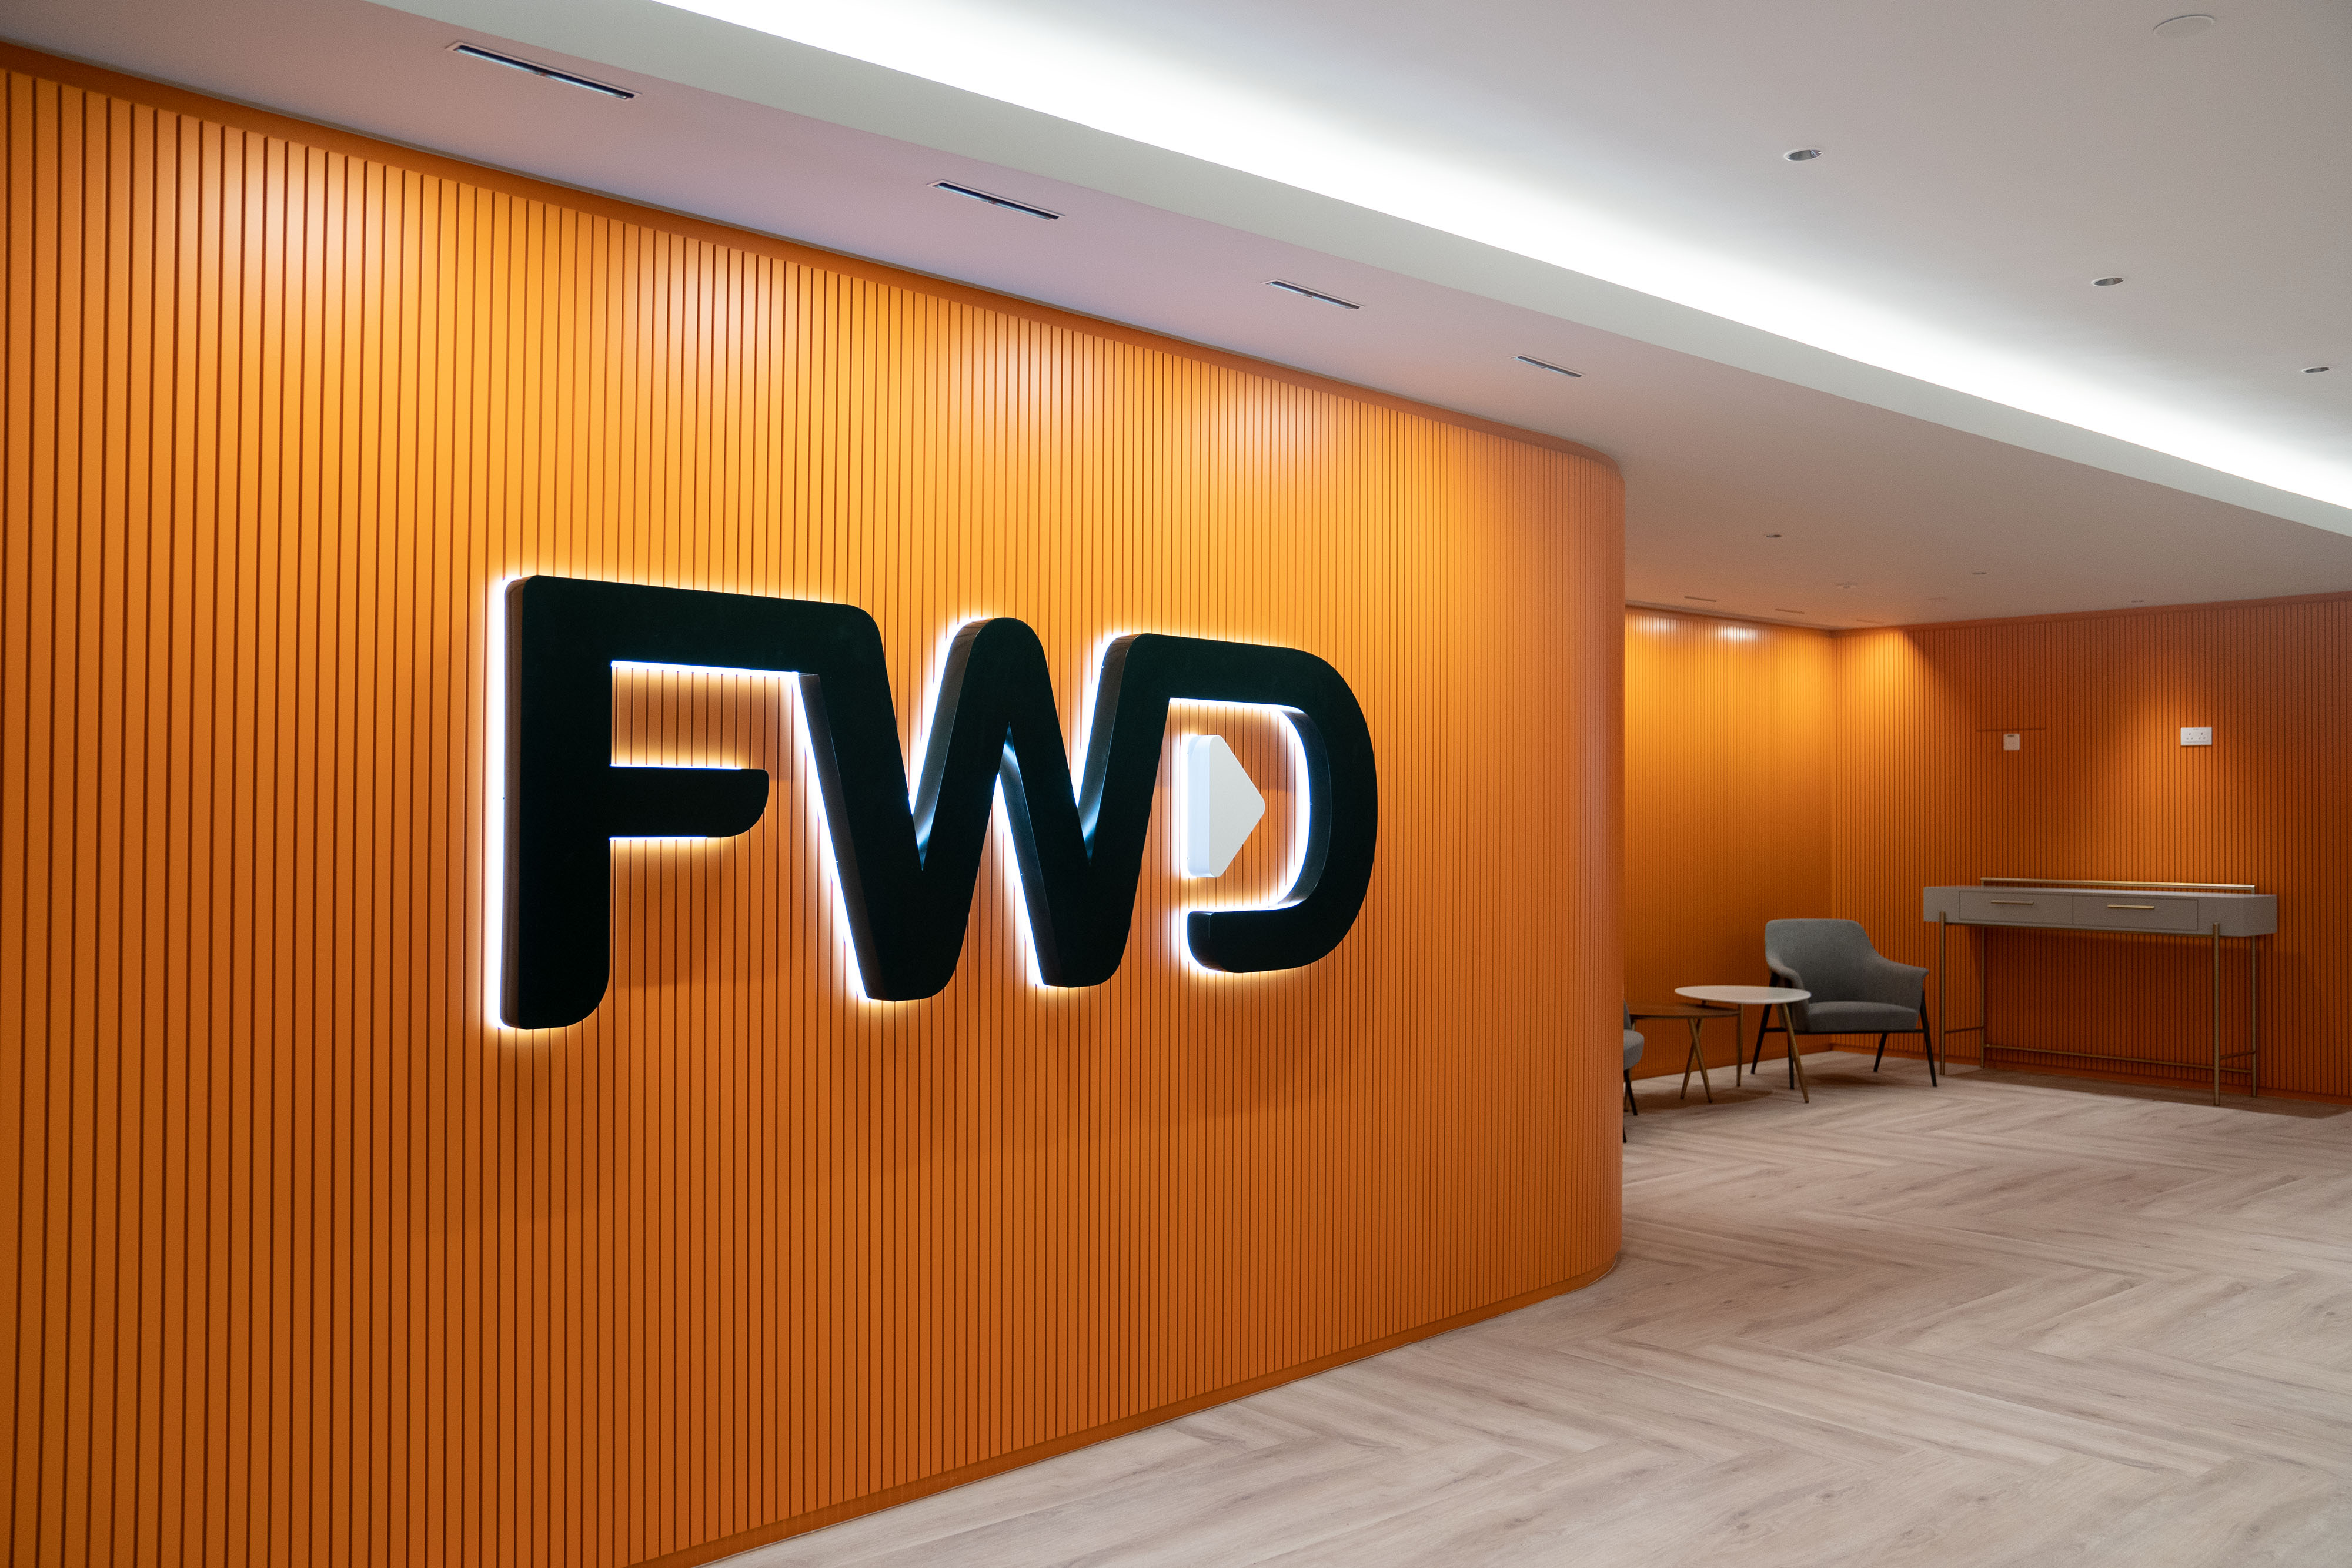 FWD General Insurance tops Forrester Customer Experience Index in Hong Kong for second year running